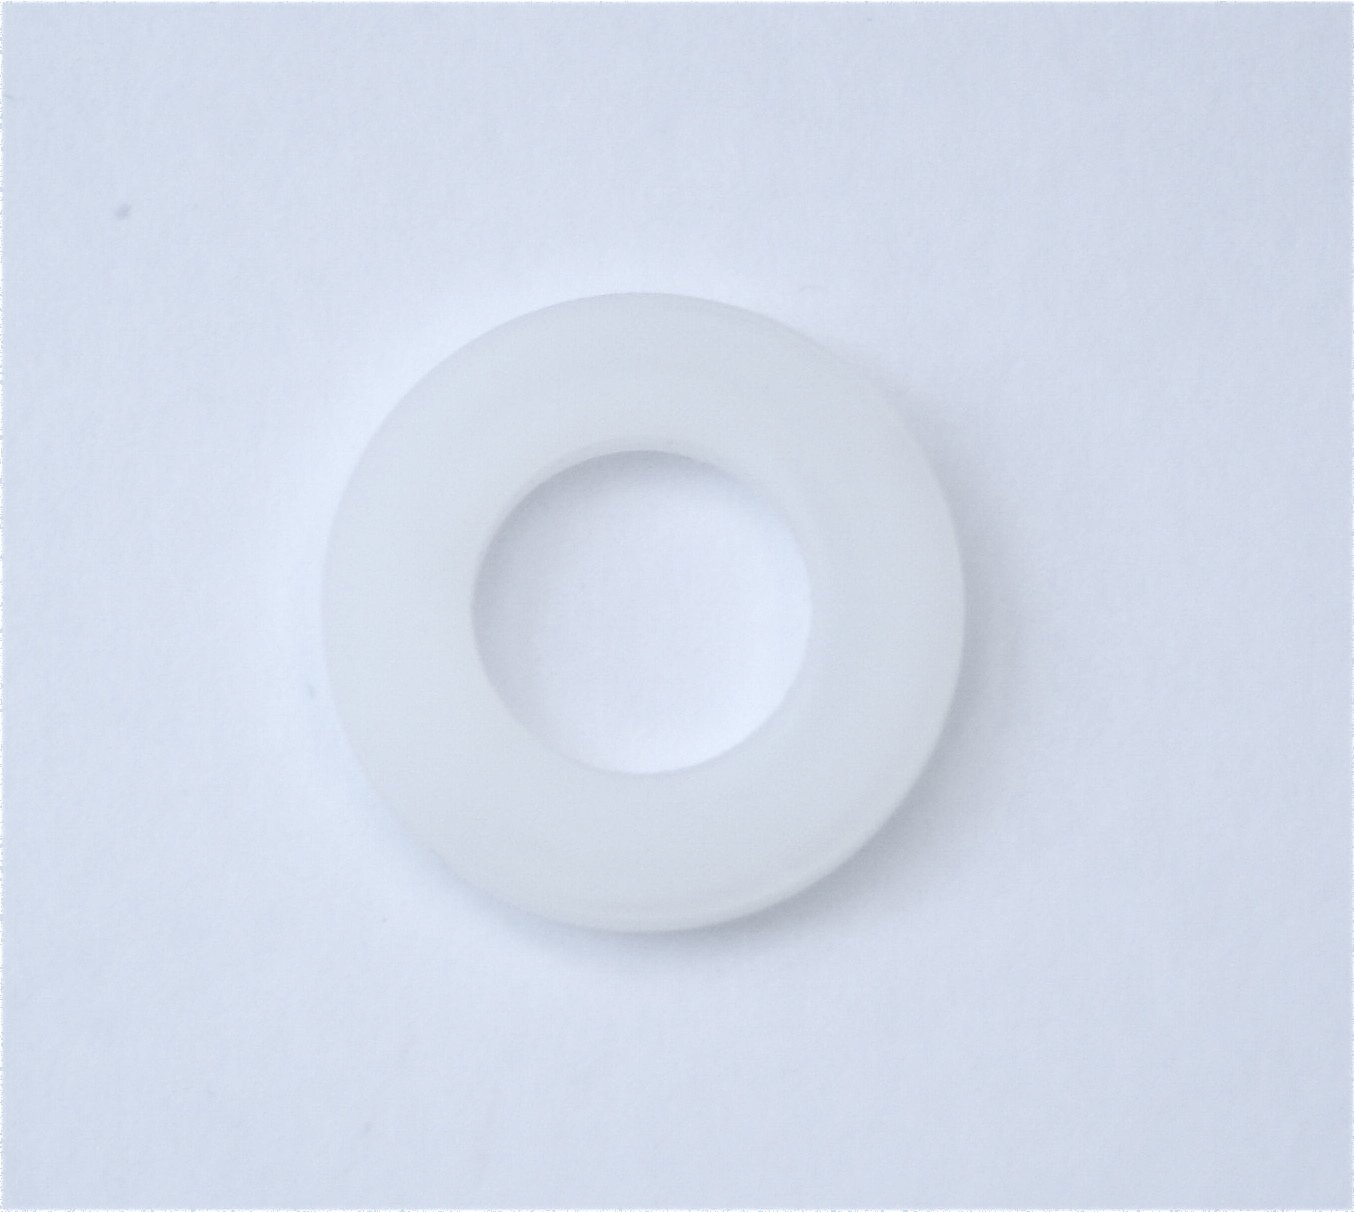 M8 Nylon Washer - Pack 25 - Metric Washers Natural Nylon 6.6 M A Components